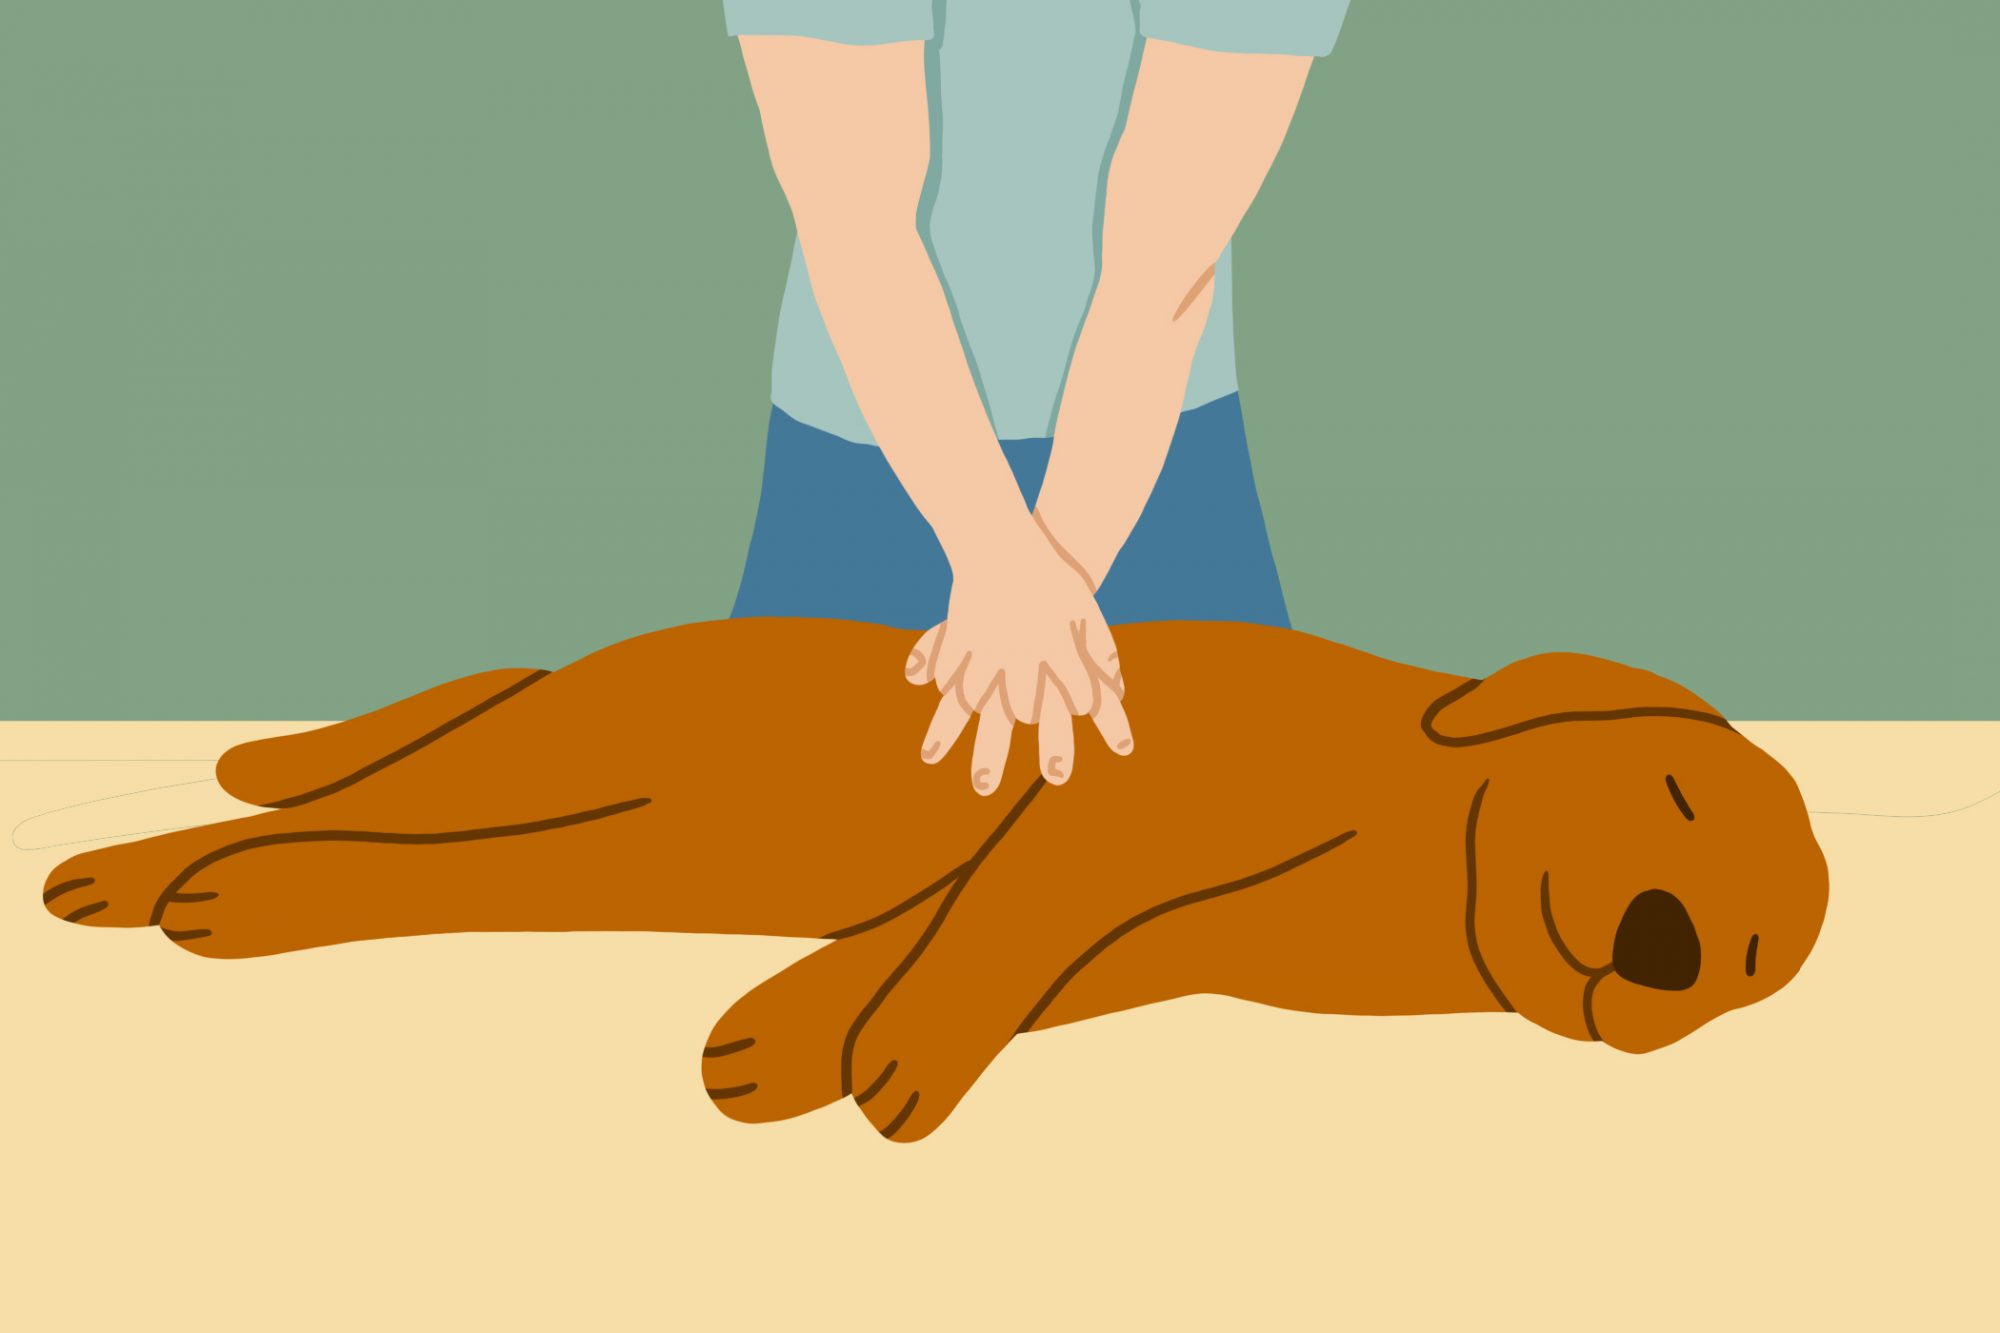 illustration of person performing CPR on a dog